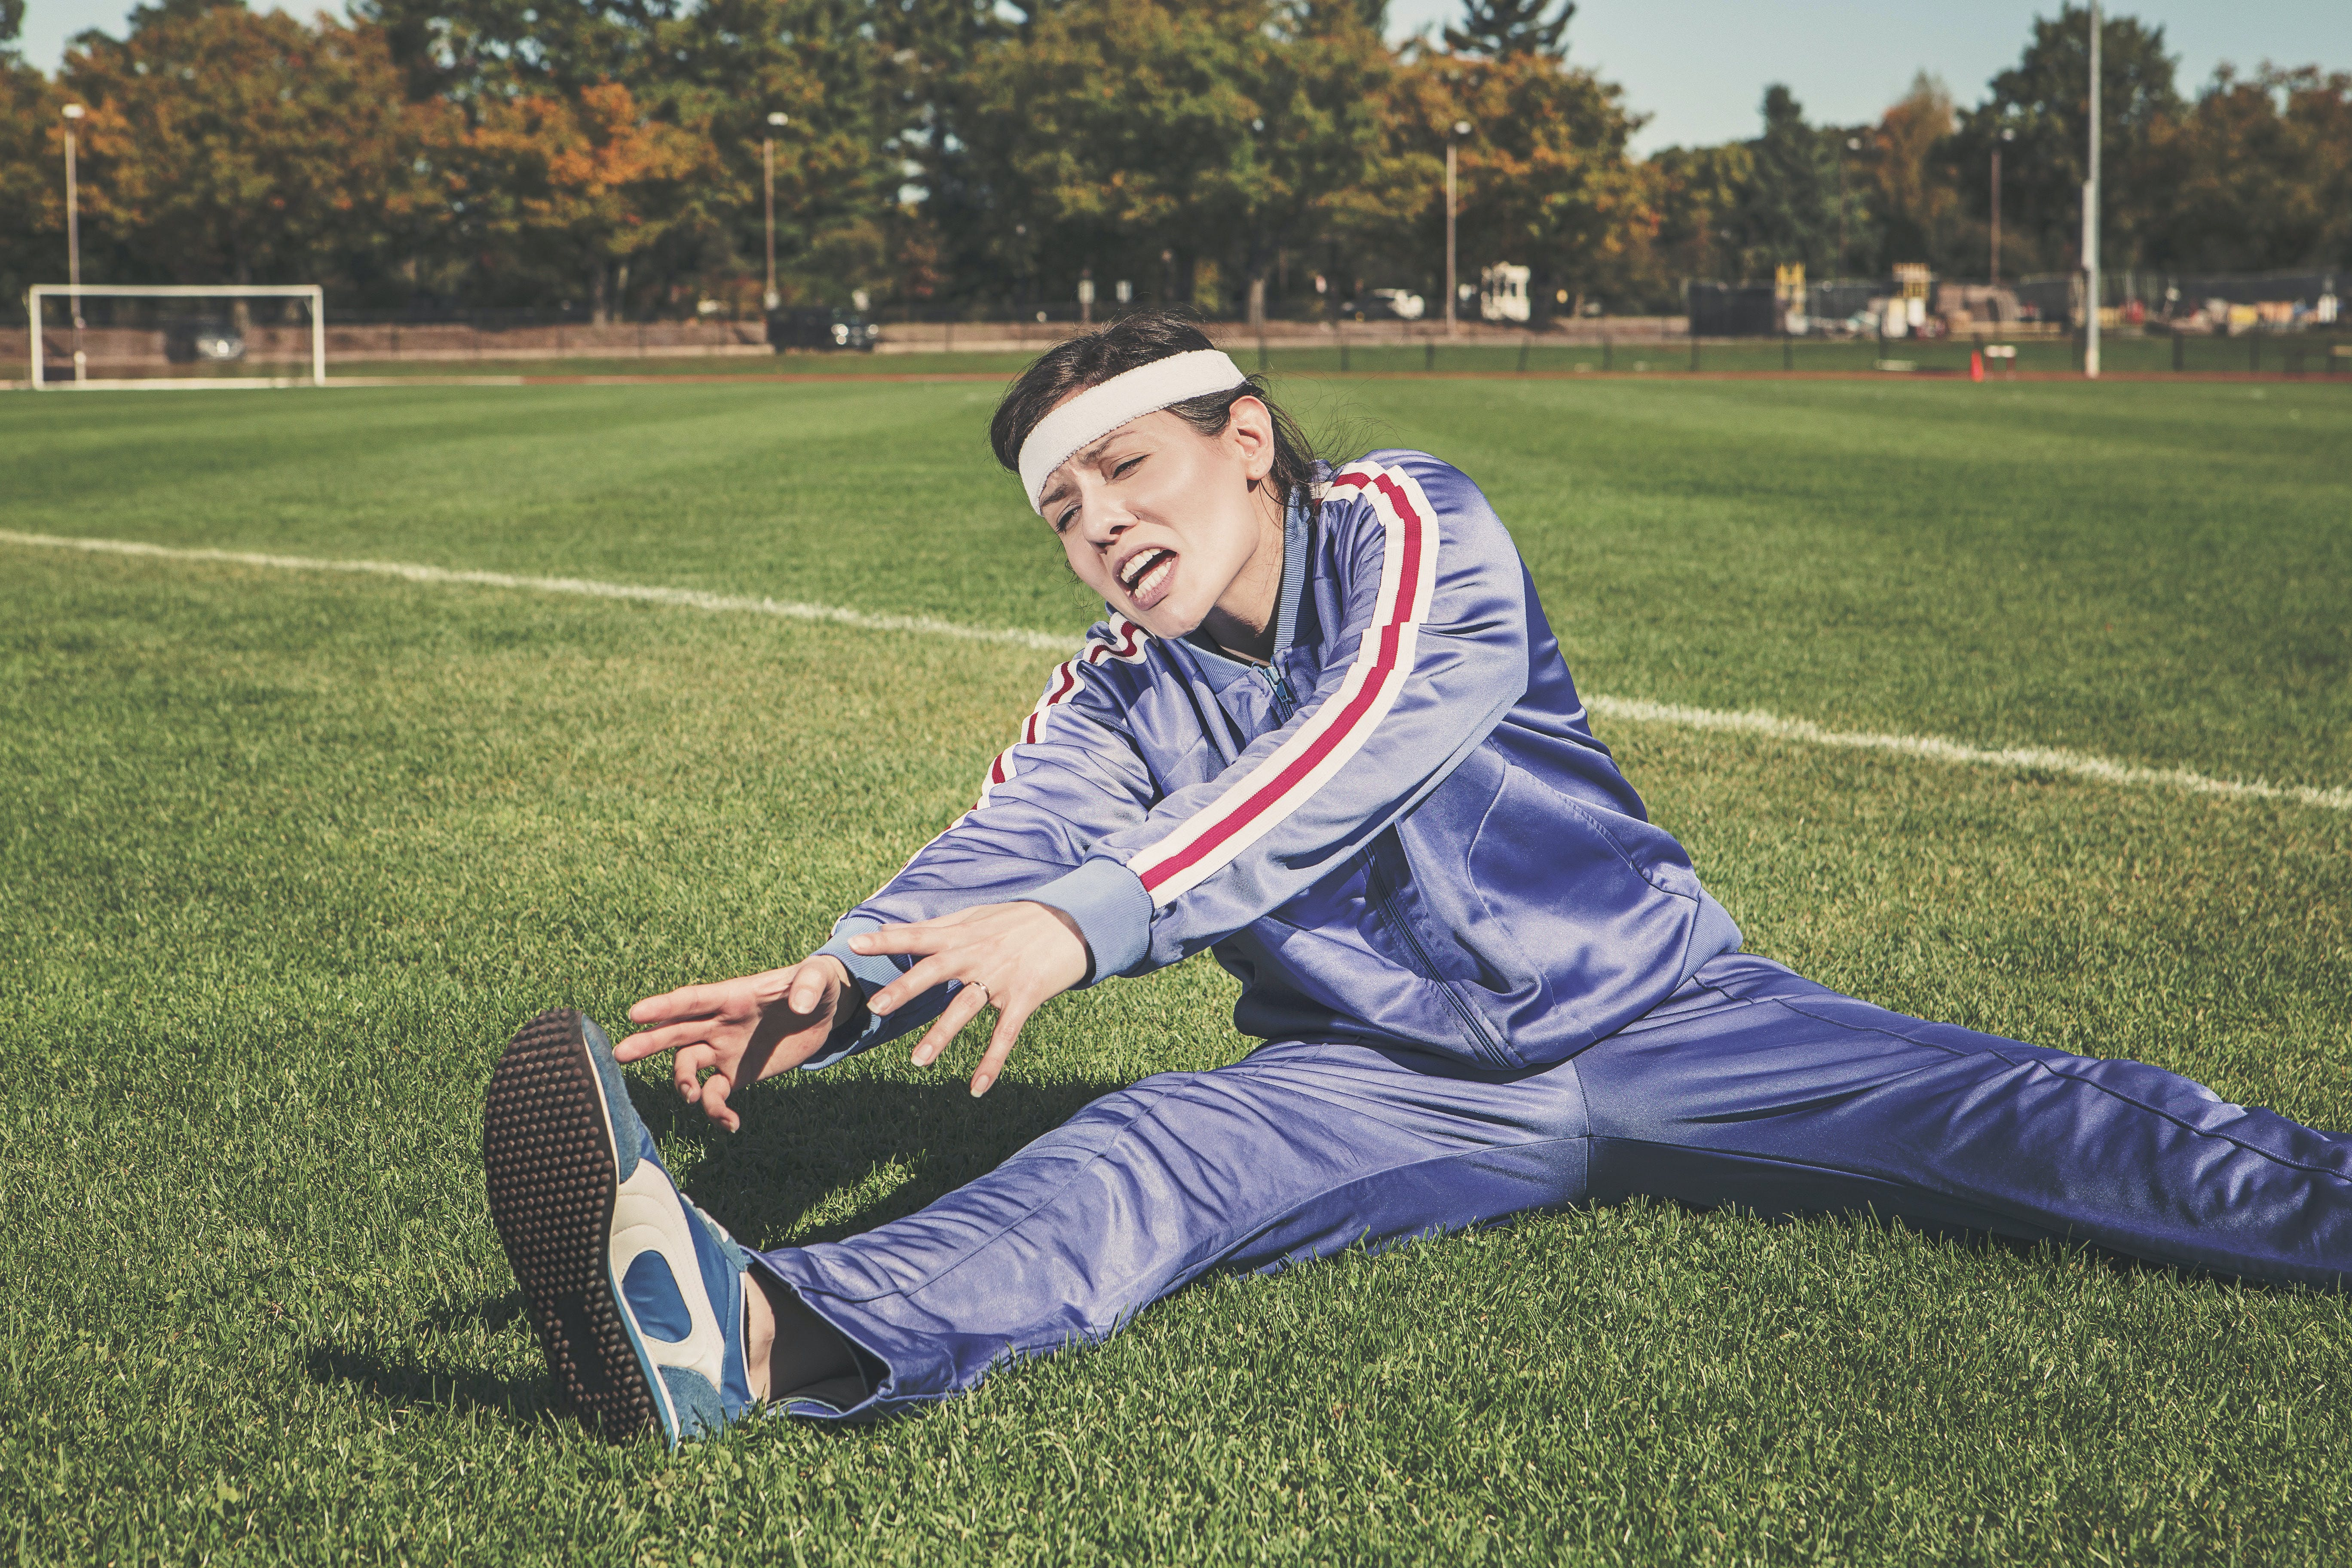 Woman Stretching on Grass Field